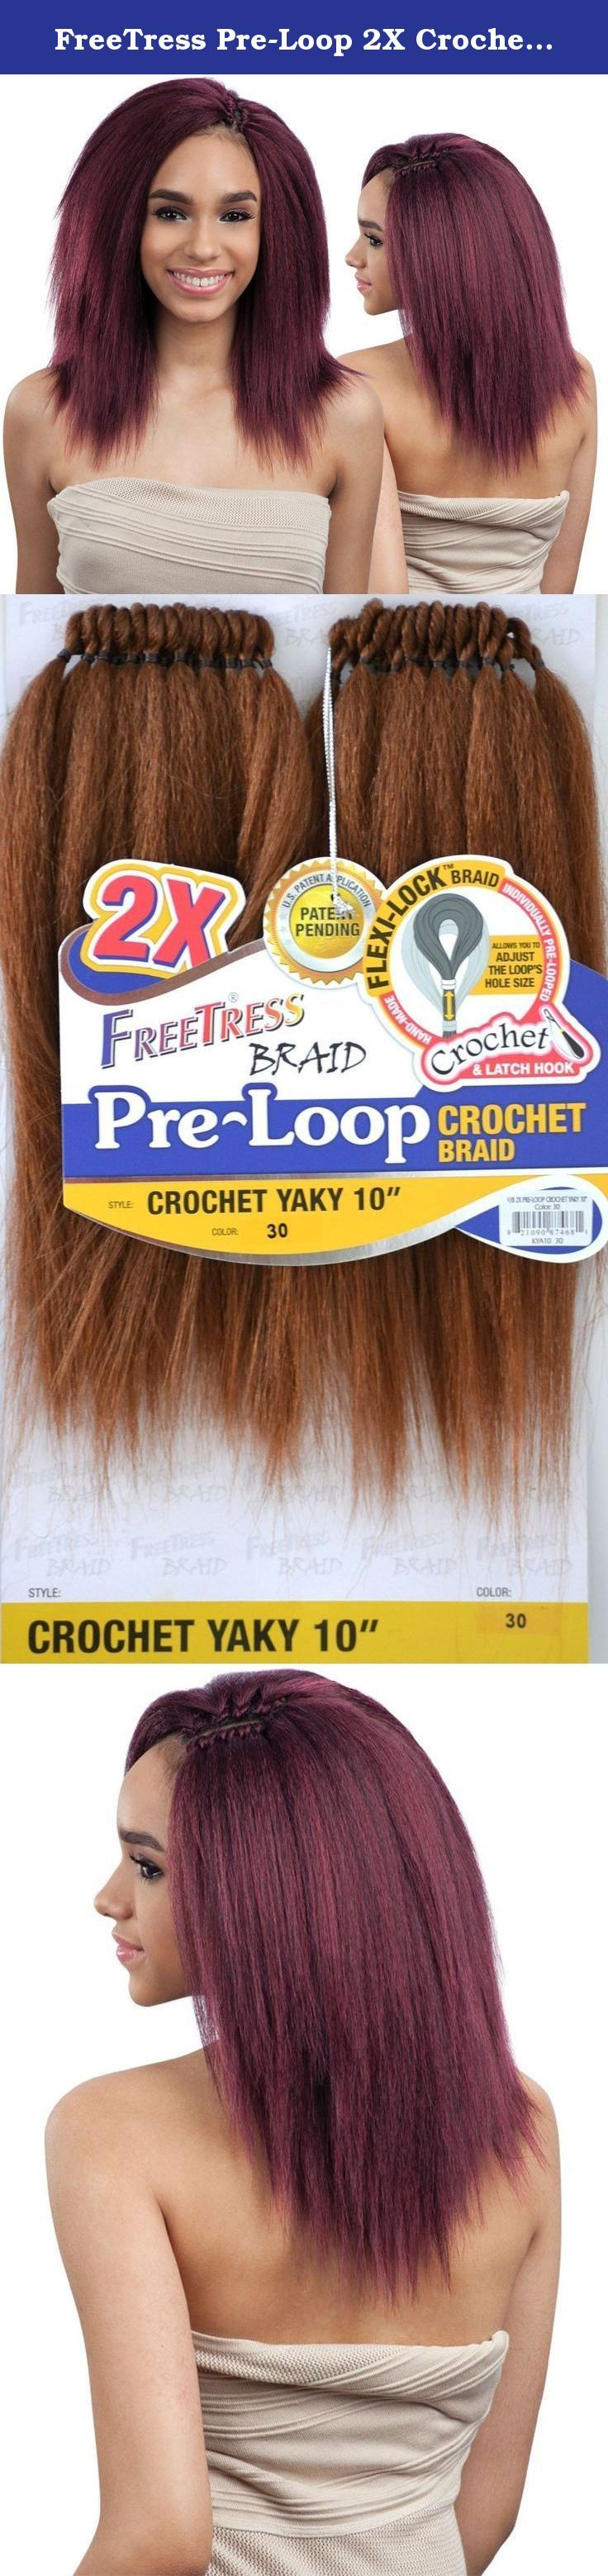 """FreeTress Pre-Loop 2X Crochet Braid Synthetic Yaky 10"""" (1B). Crochet & Latch Hook Flexi-Lock Braid Hand-Made Individually Pre-Looped Allows you to adjust the loop's hole size. Patent Pending Pre-Looped Crochet Braids Save Time and Make for an Easy Installation Easy to Install, Easy Take Down Flexi-LockTM Braid Allows You to Adjust the Loop's Hole to Your Desire Less Frizz, Less Tangling Because There is No Need to Separate Hair."""